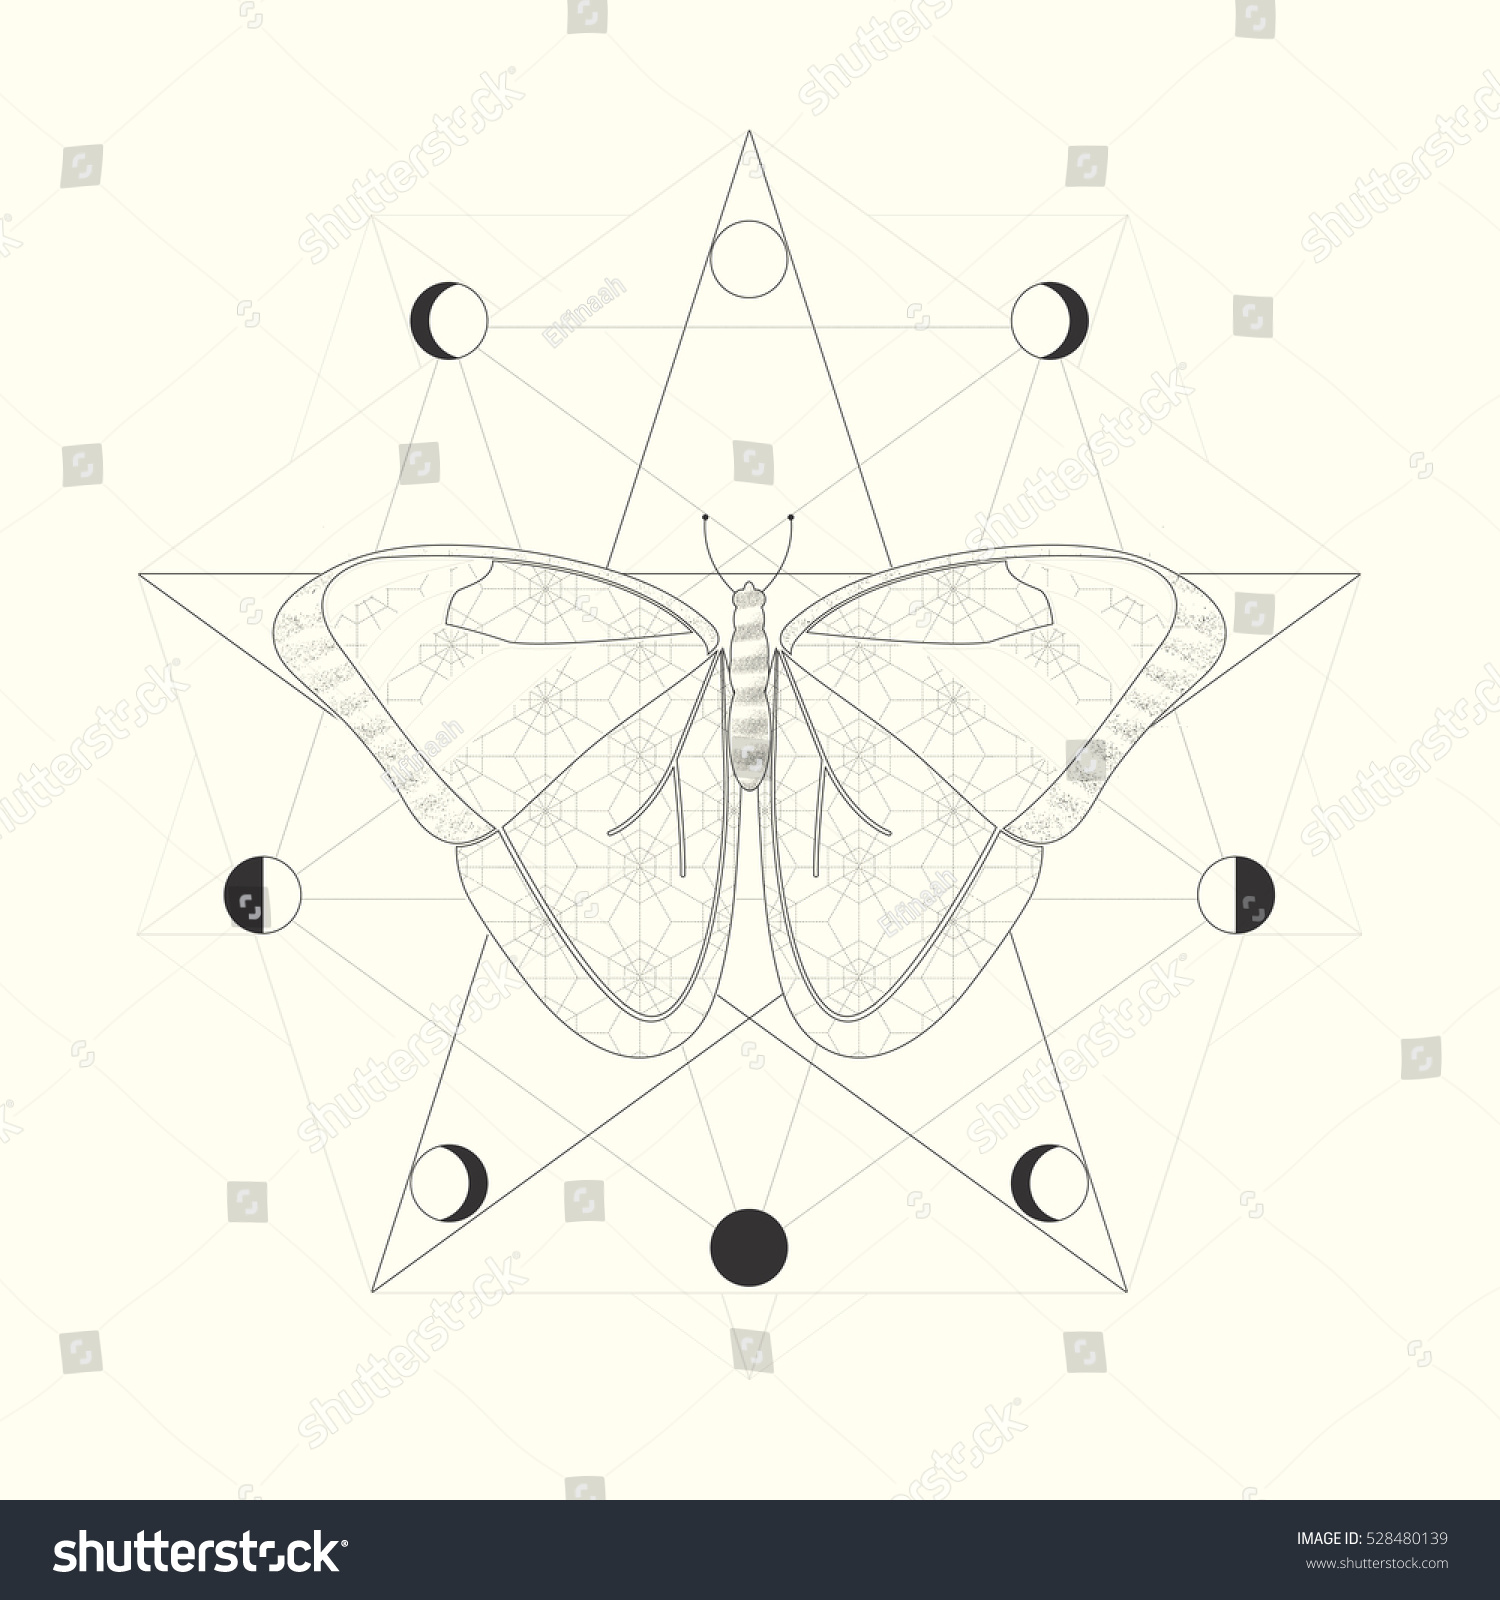 Butterfly symbol rebirth transformation moon phases stock vector butterfly as a symbol of rebirth and transformation moon phases sacred geometry mandala adult buycottarizona